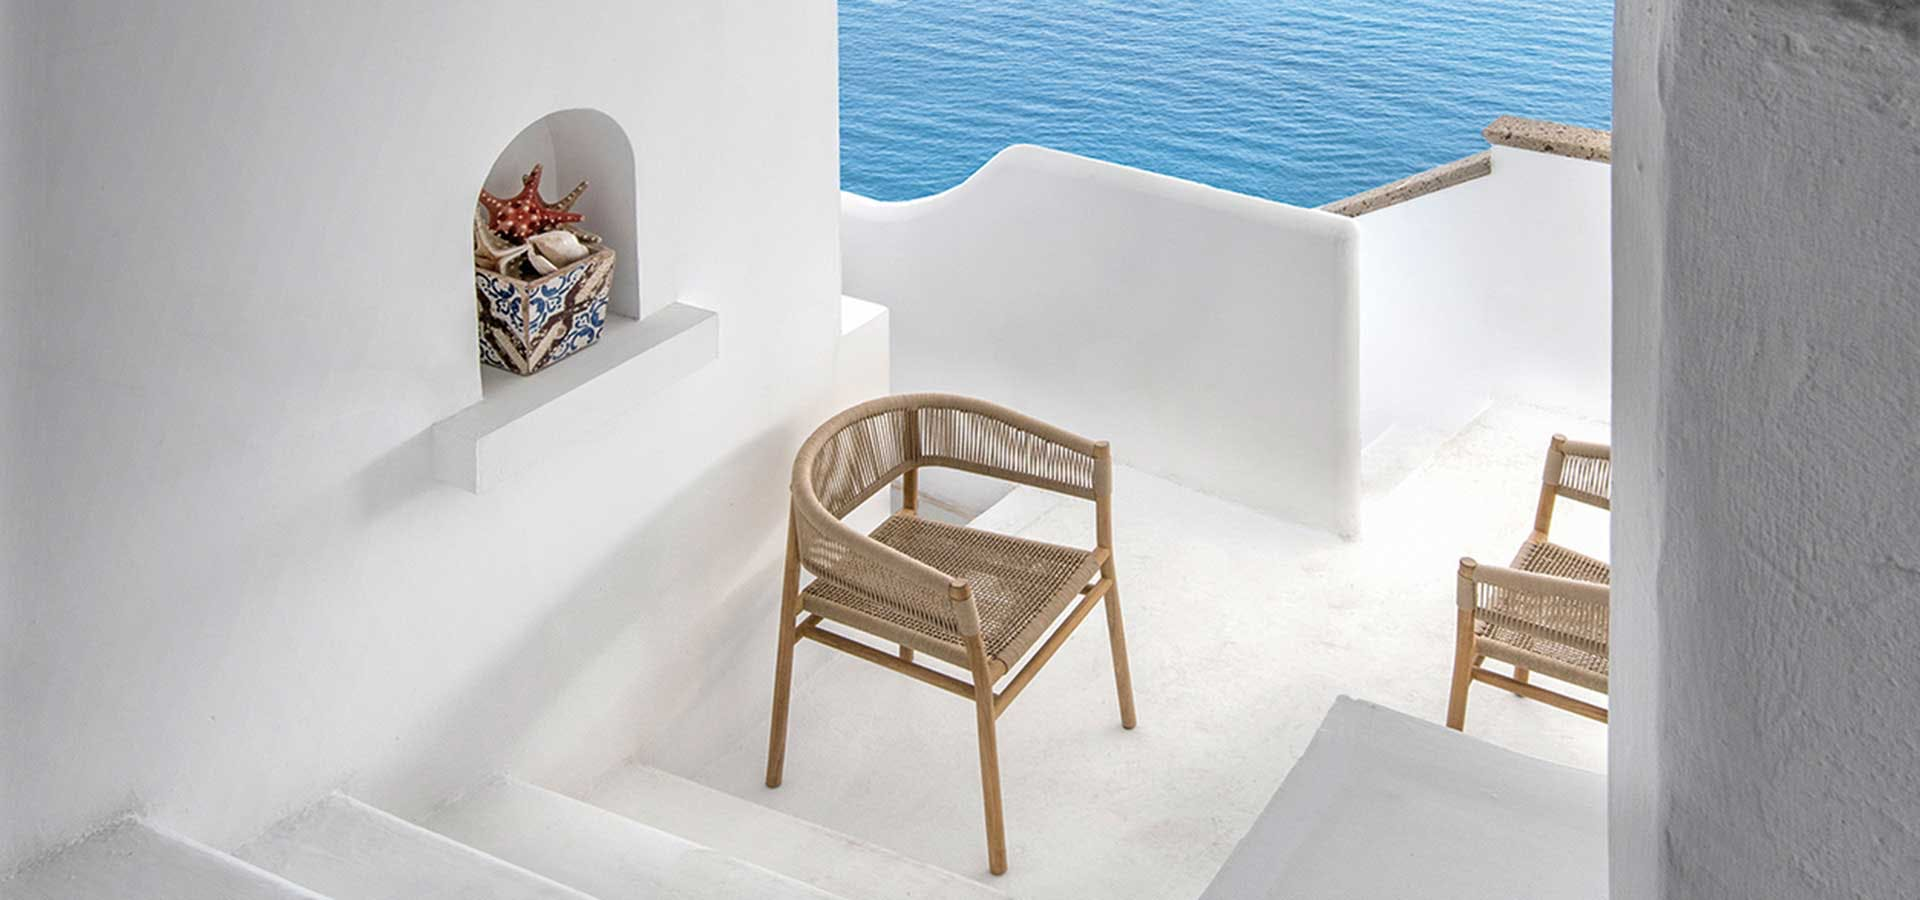 Image of Kilt view1 1 in Outdoors spaces that break design boundaries with indoors - Cosentino